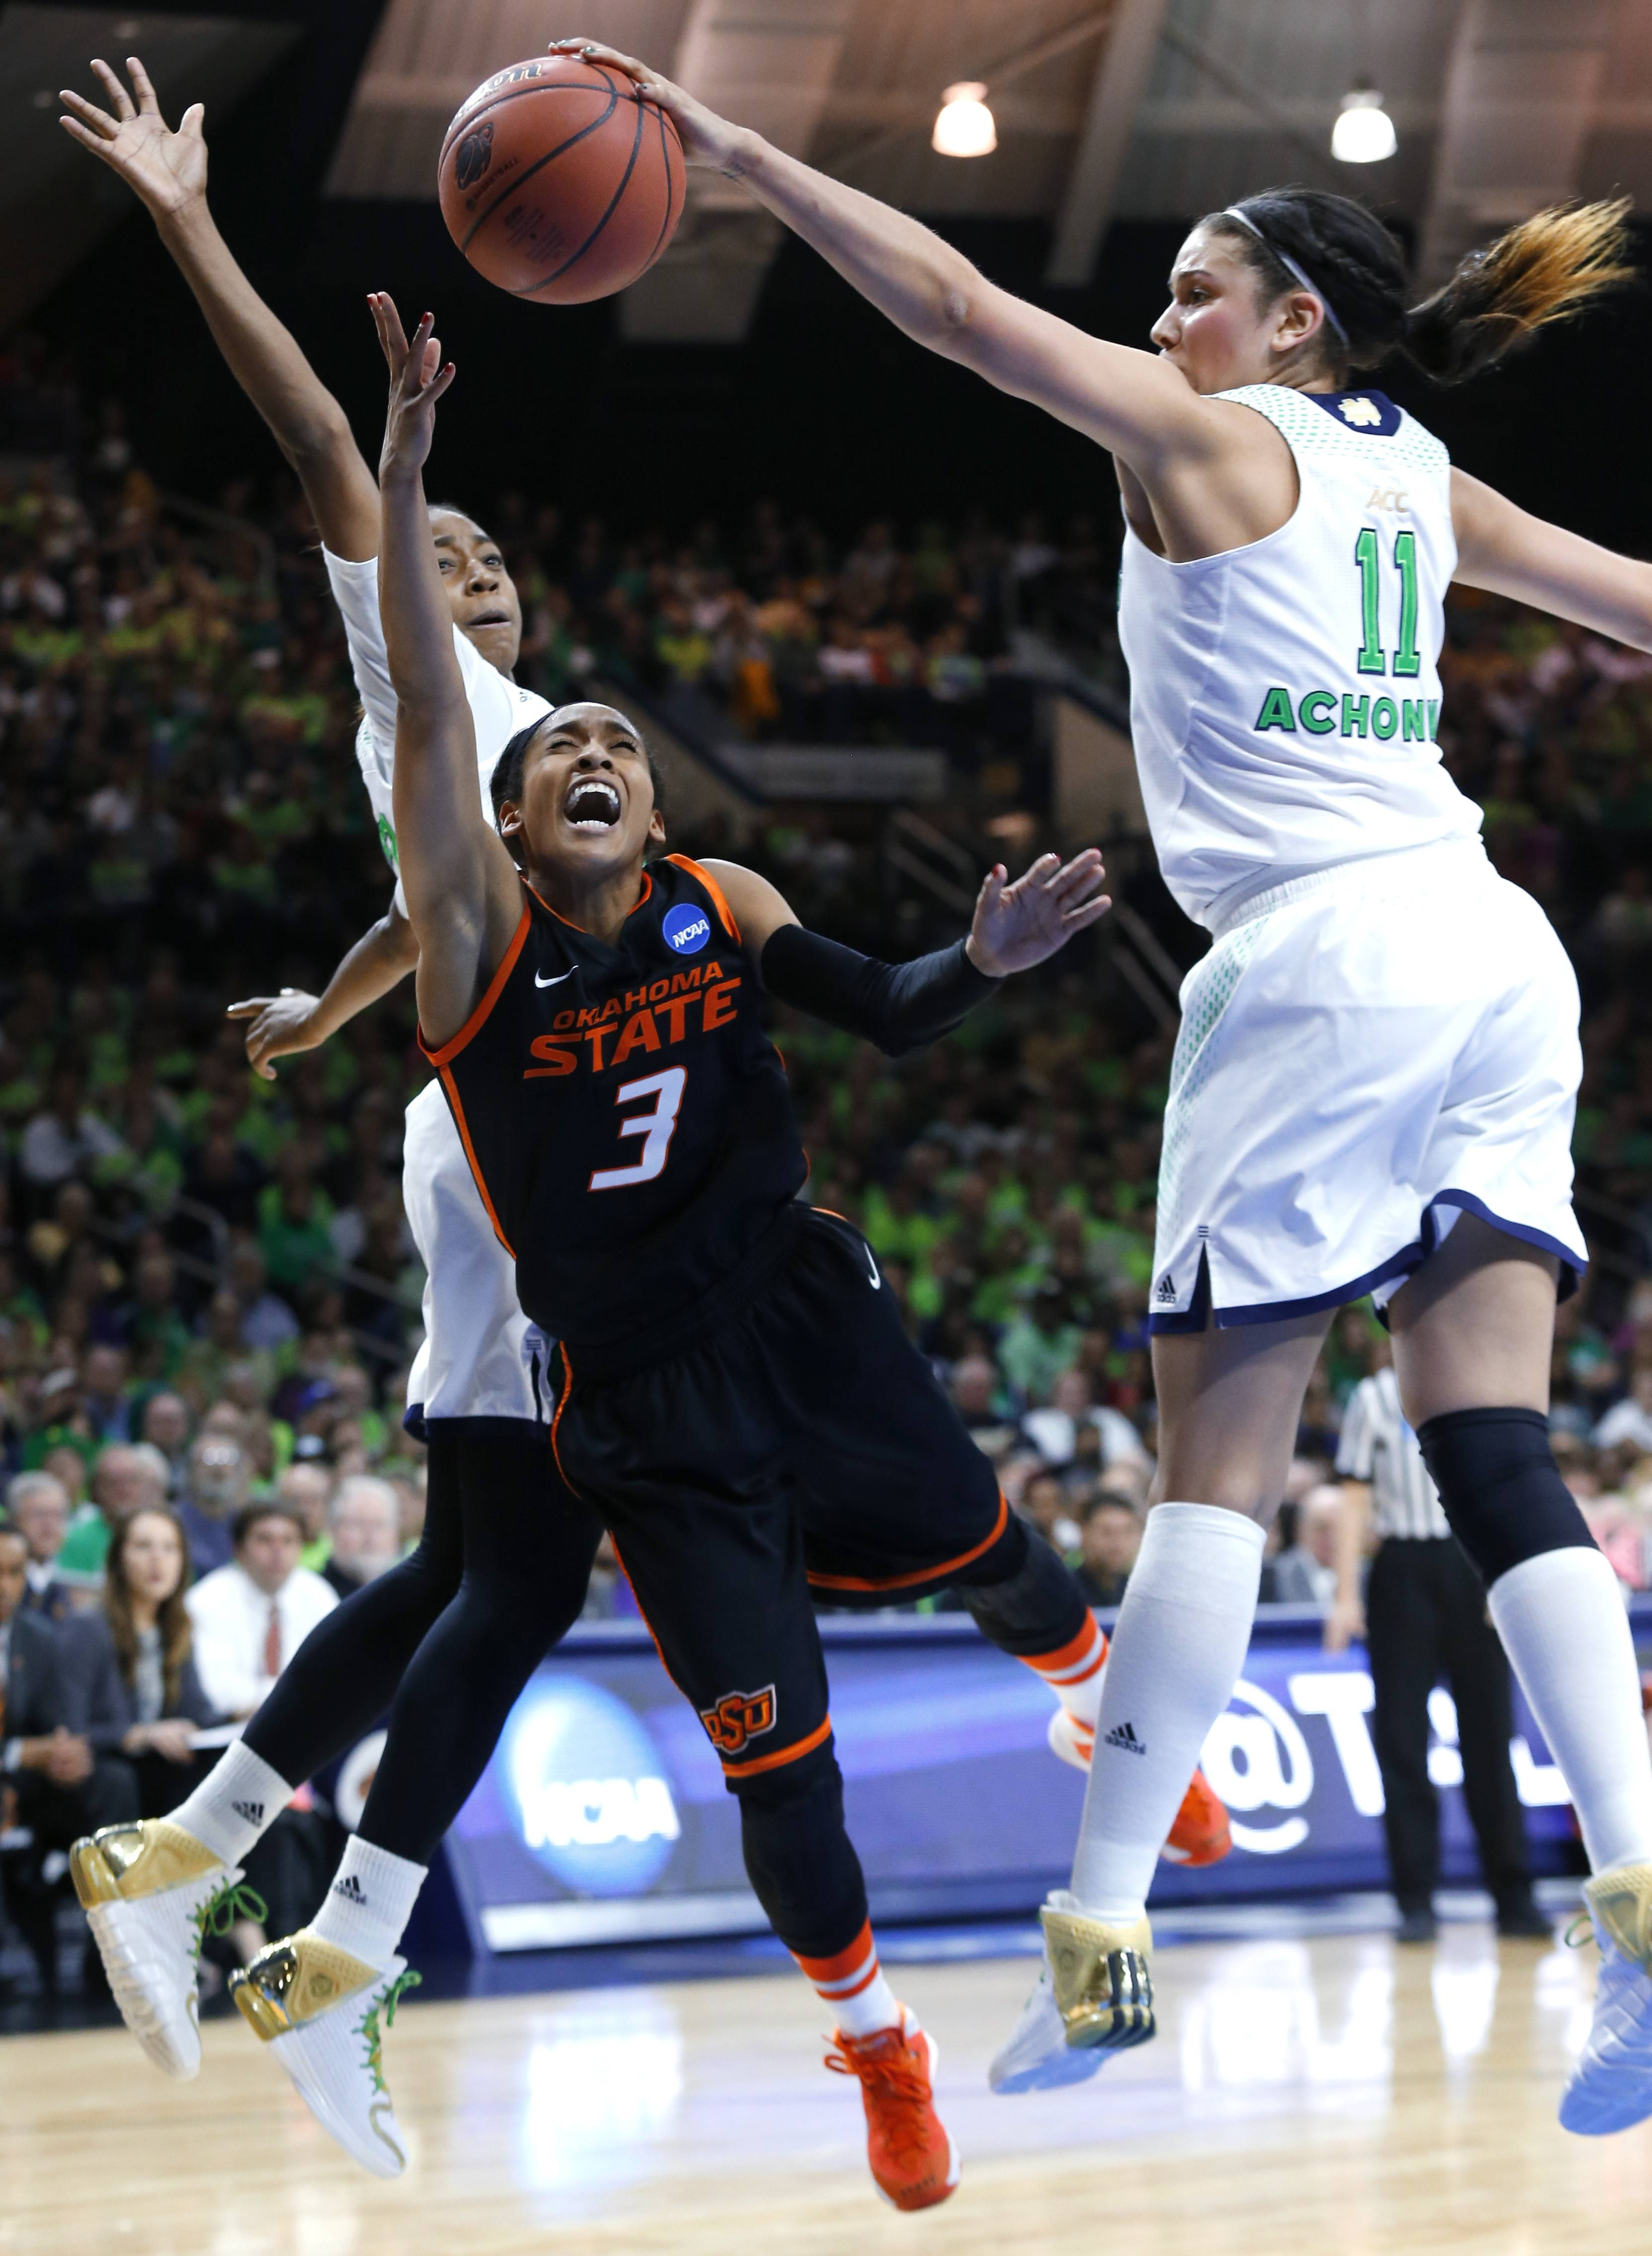 Notre Dame forward Natalie Achonwa (11) blocks a shot by Oklahoma State guard Tiffany Bias (3) as guard Jewell Loyd, at rear, helps to defend during the second half of a regional semifinal in the NCAA college basketball tournament at the Purcell Pavilion in South Bend, Ind., Saturday.